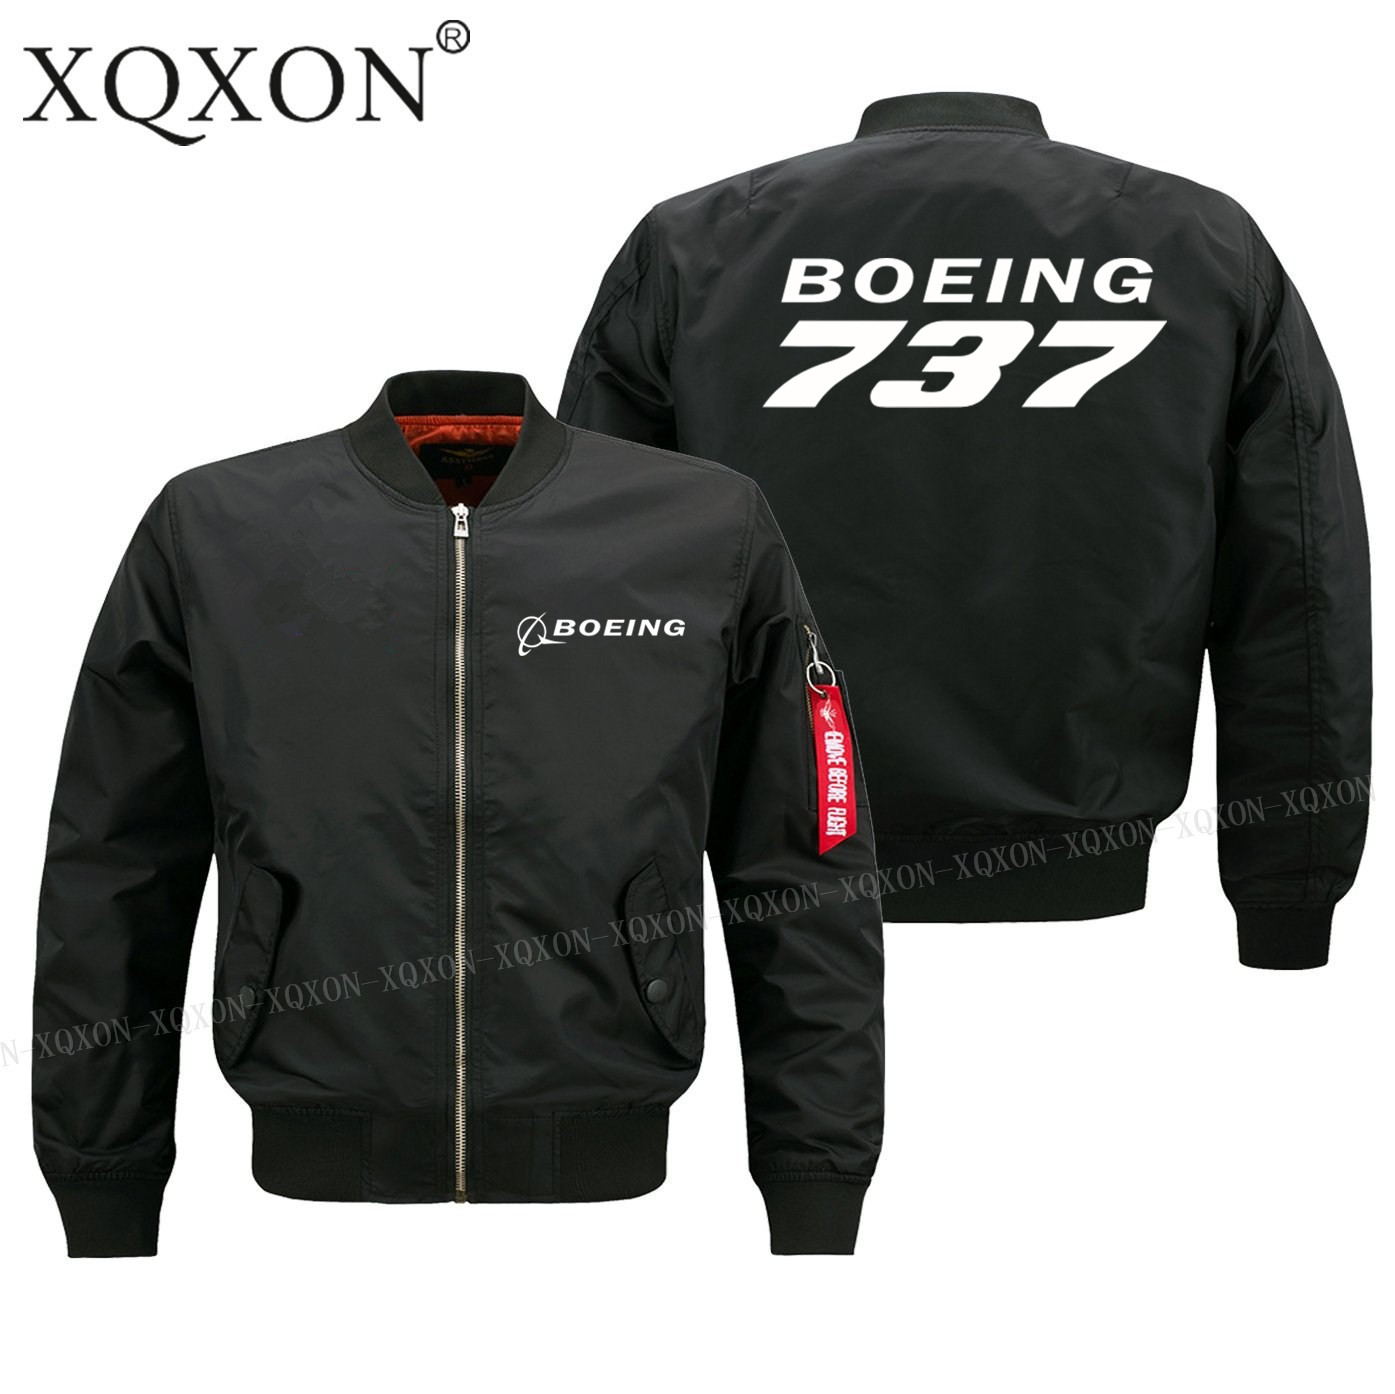 3c168e8cd US $28.0 35% OFF|XQXON 2019 High quality cold proof jacket new BOEING 737  design man Coats Jackets hot sale men pilot jacket (Customizable) J58-in ...